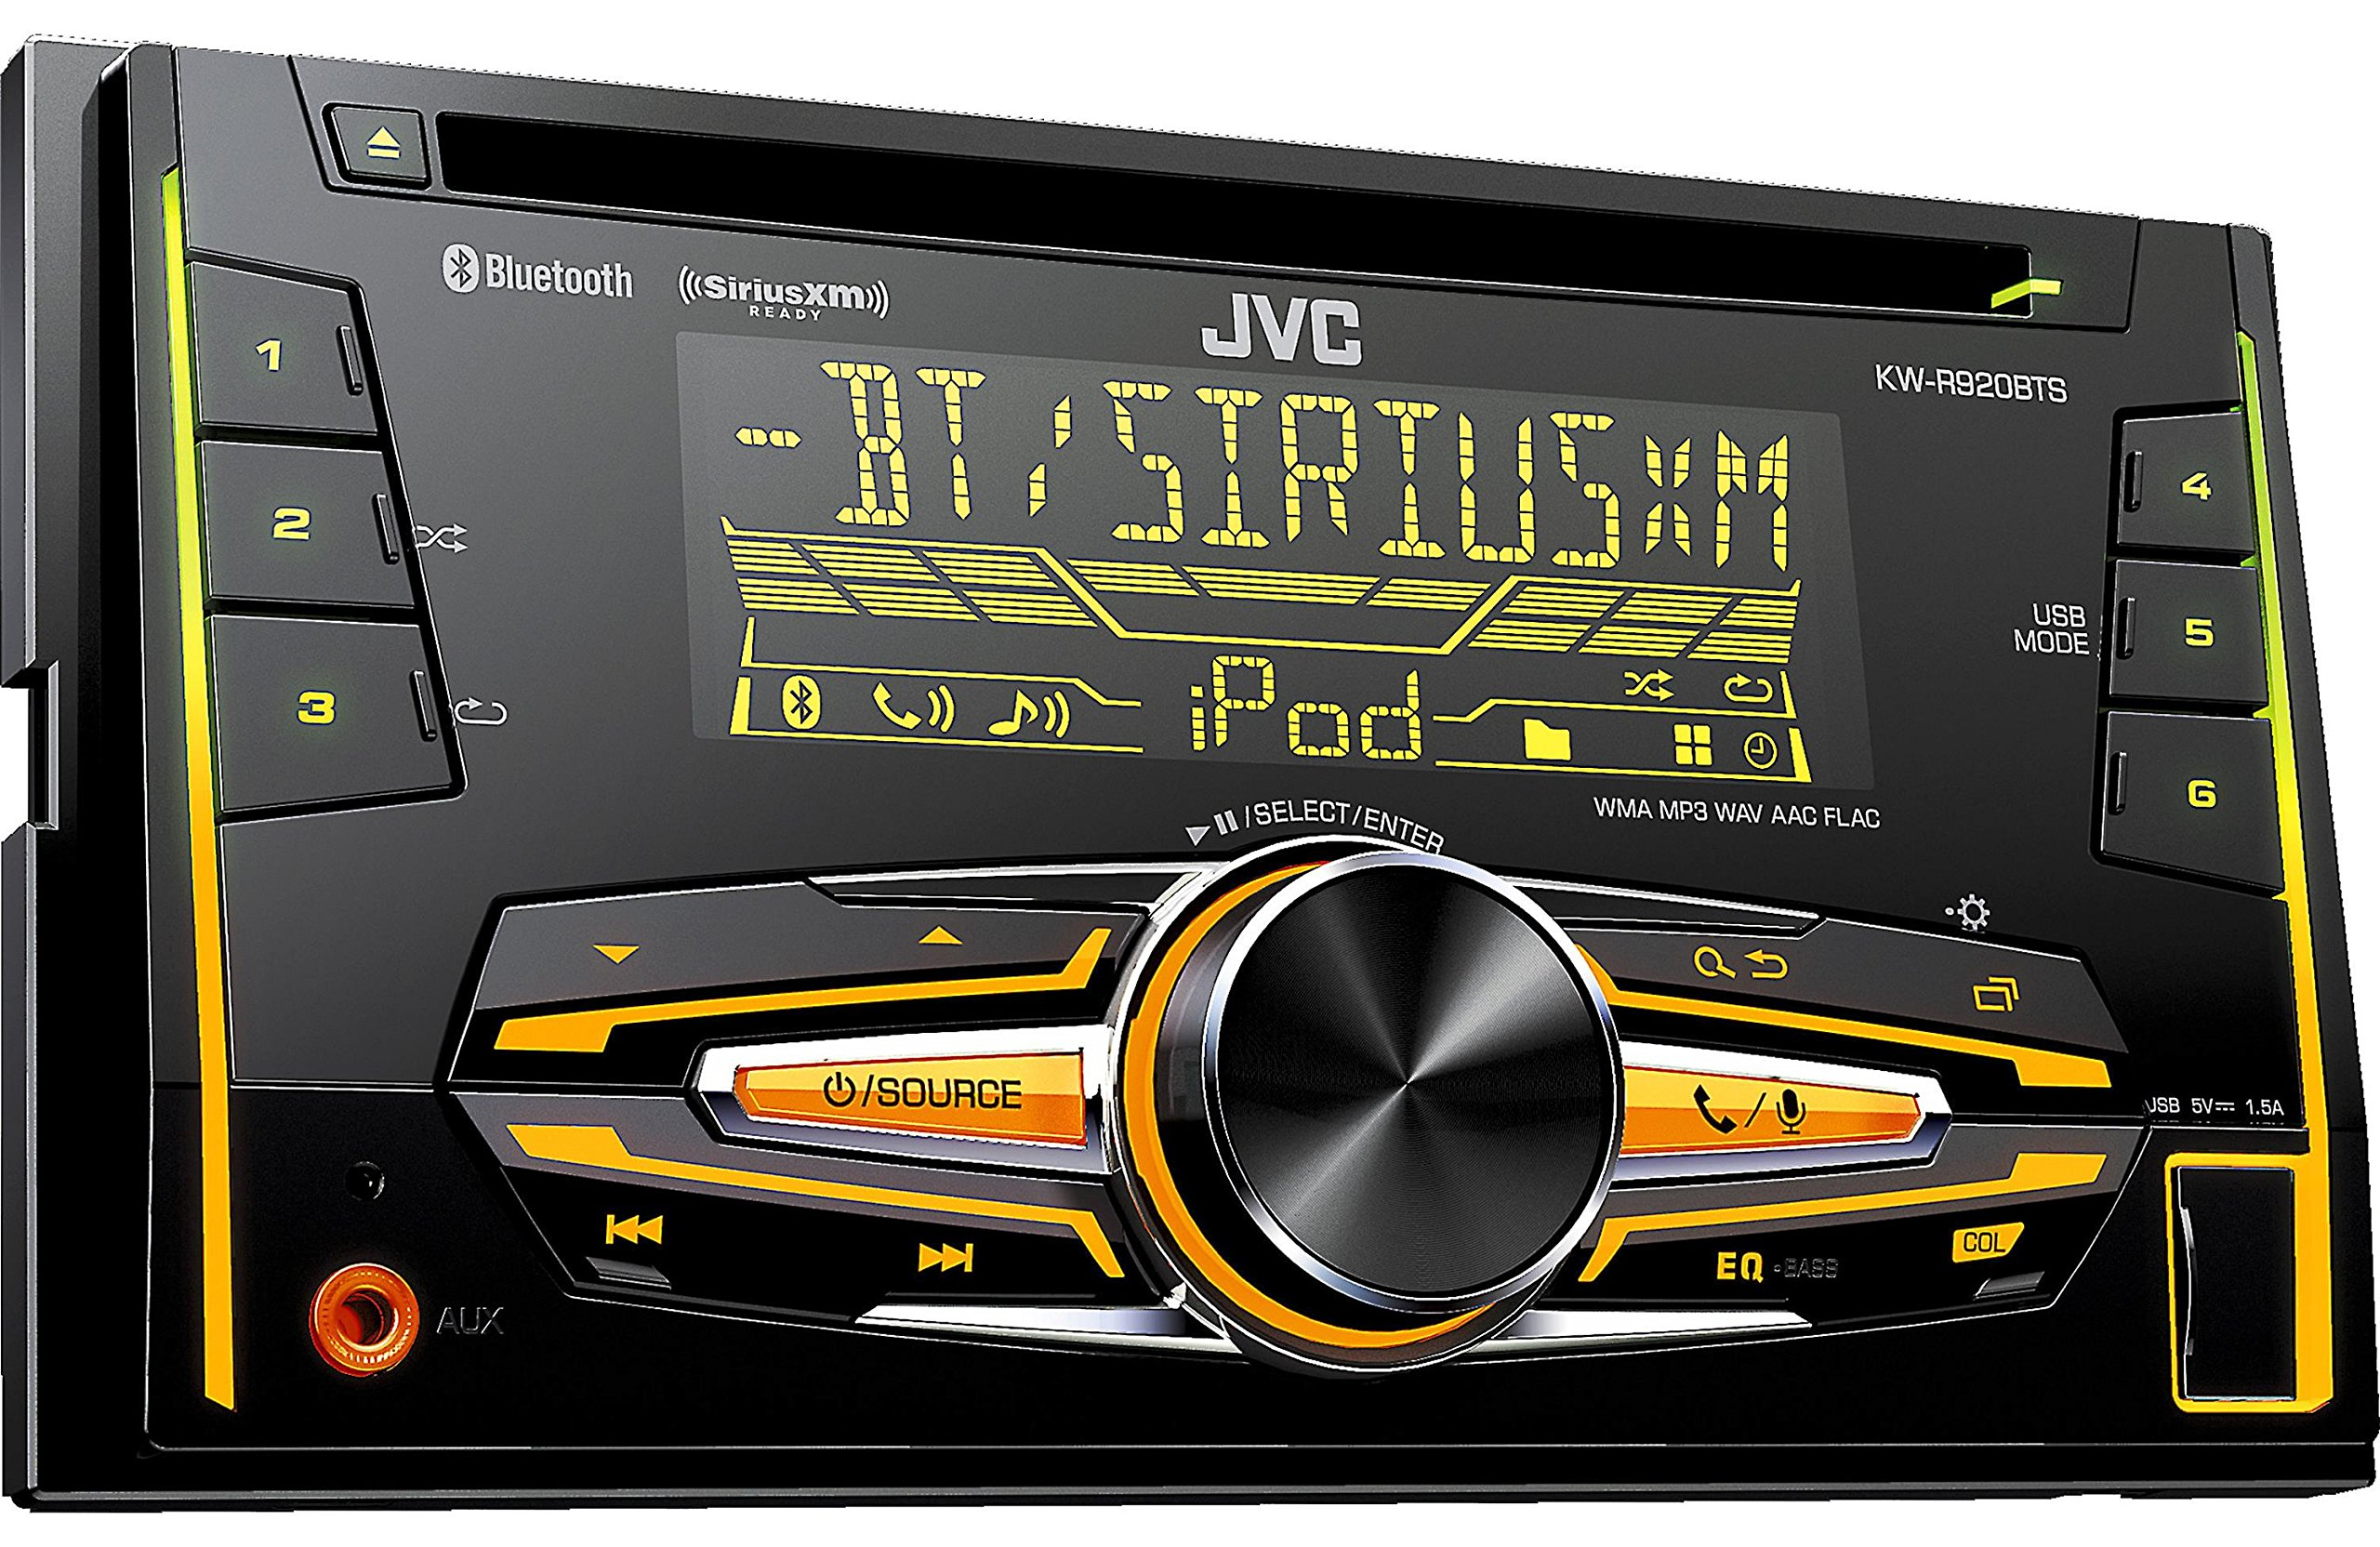 JVC KW-R920BTS Double DIN Bluetooth In-Dash Car Stereo, SiriusXM Tuner Included by JVC (Image #3)